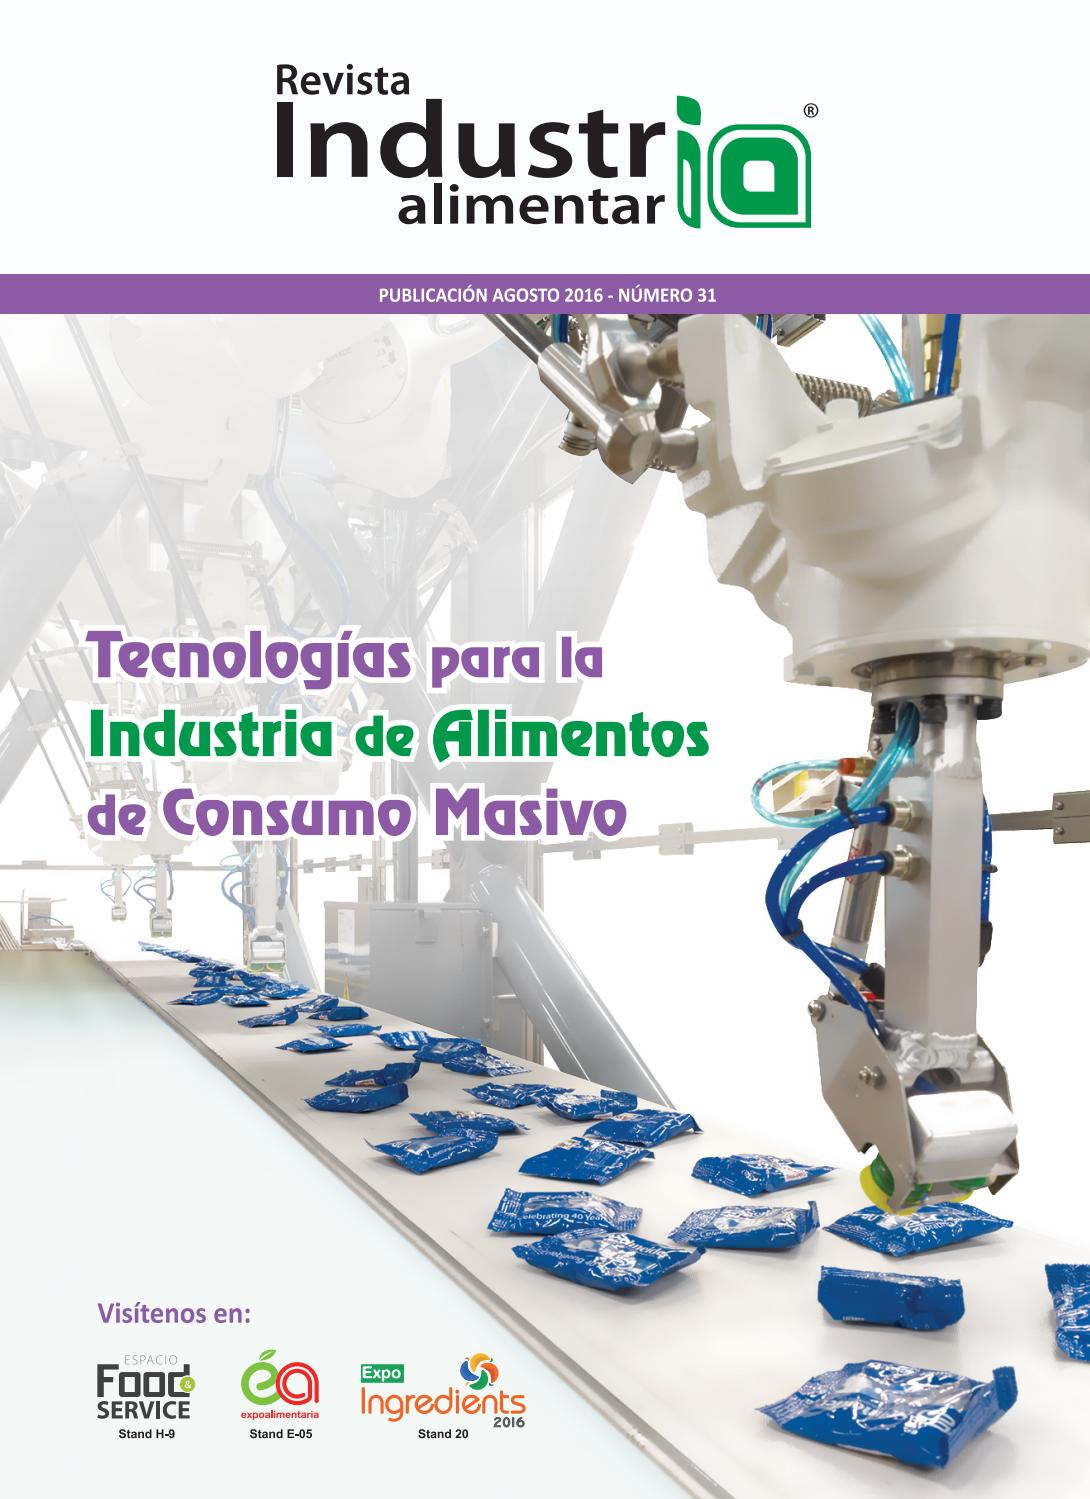 Revista Industria Alimentaria N° 31 by Revista Industria Alimentaria ...